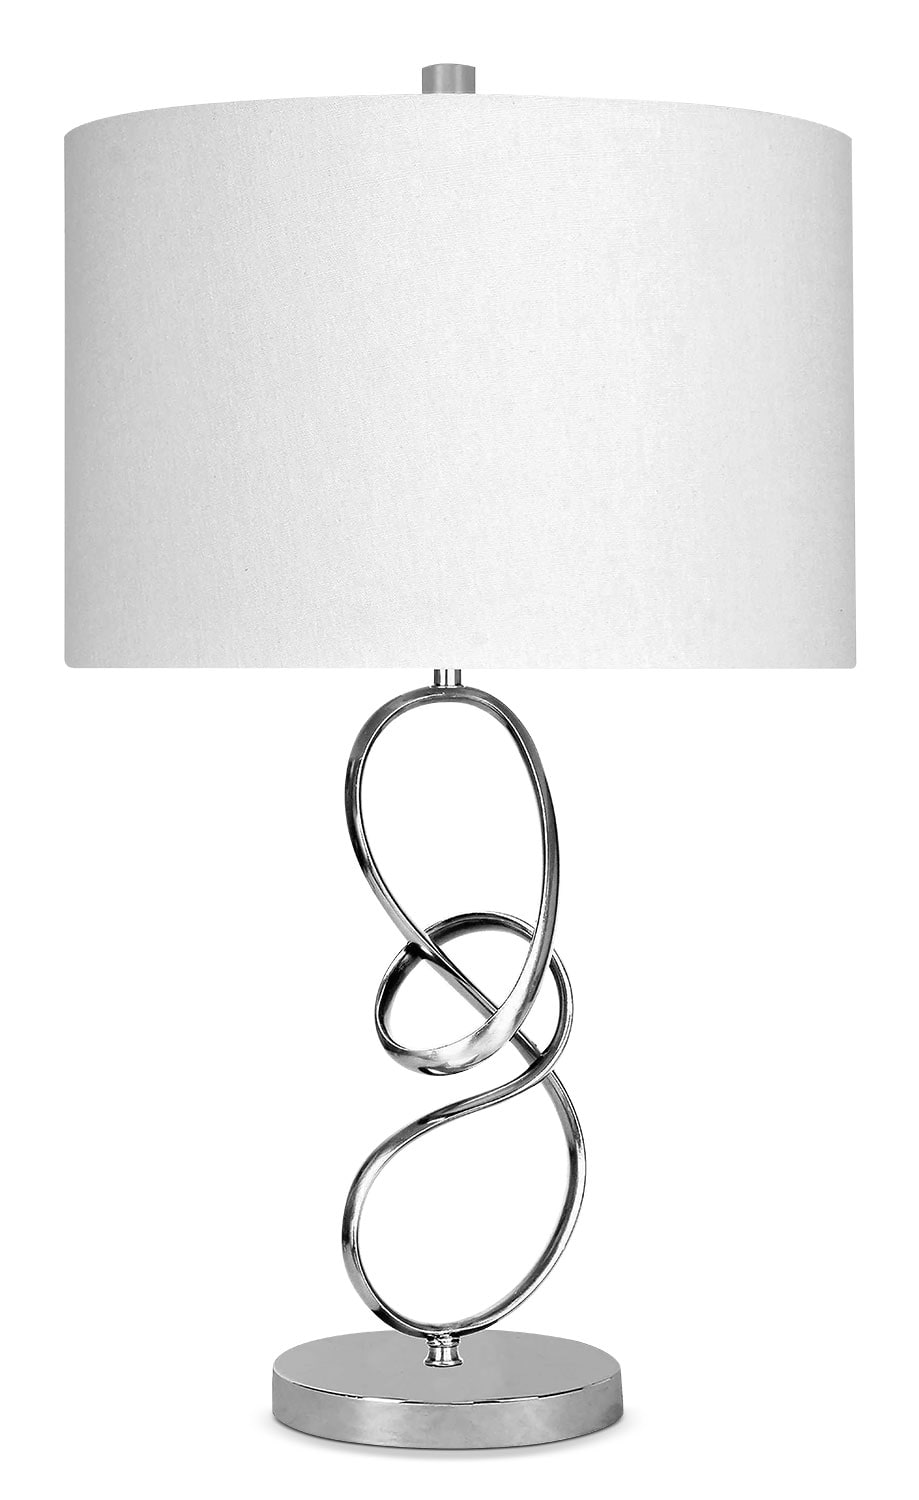 Home Accessories - Chrome Swirl Table Lamp